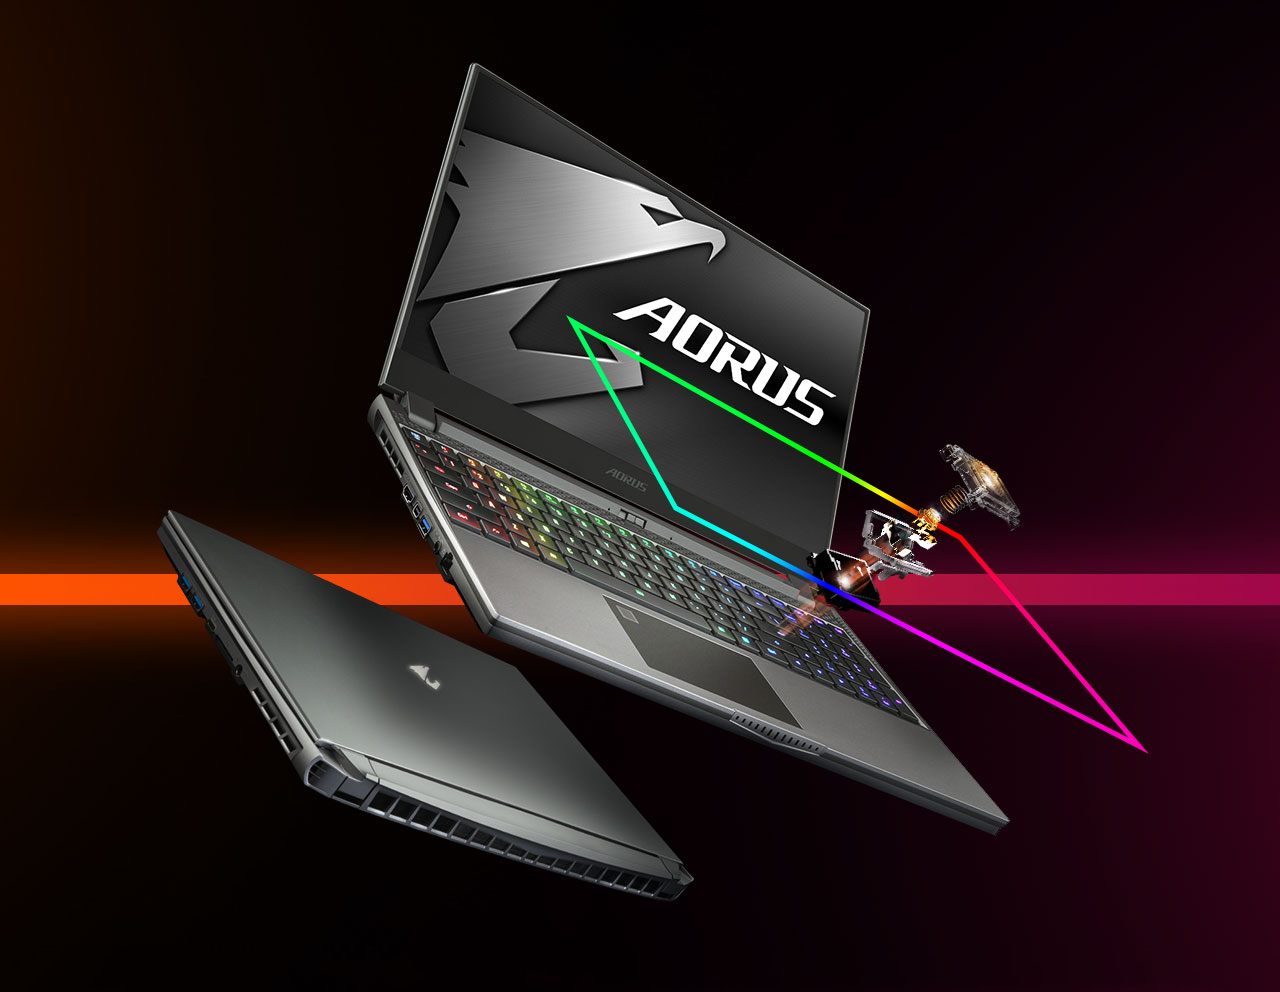 The widely opened Aorus 15G